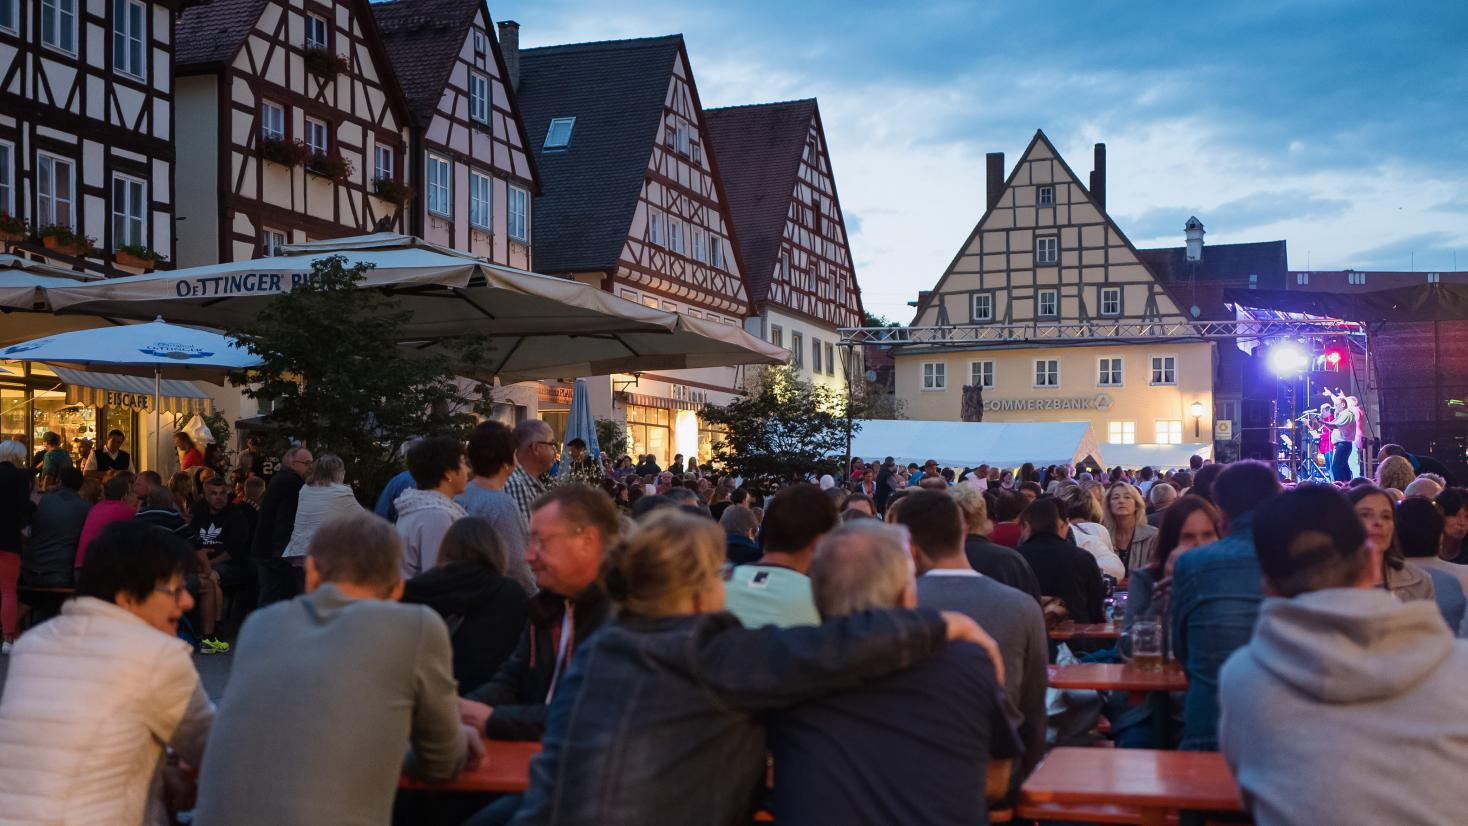 Stadtfest Oettingen, Summer in the City